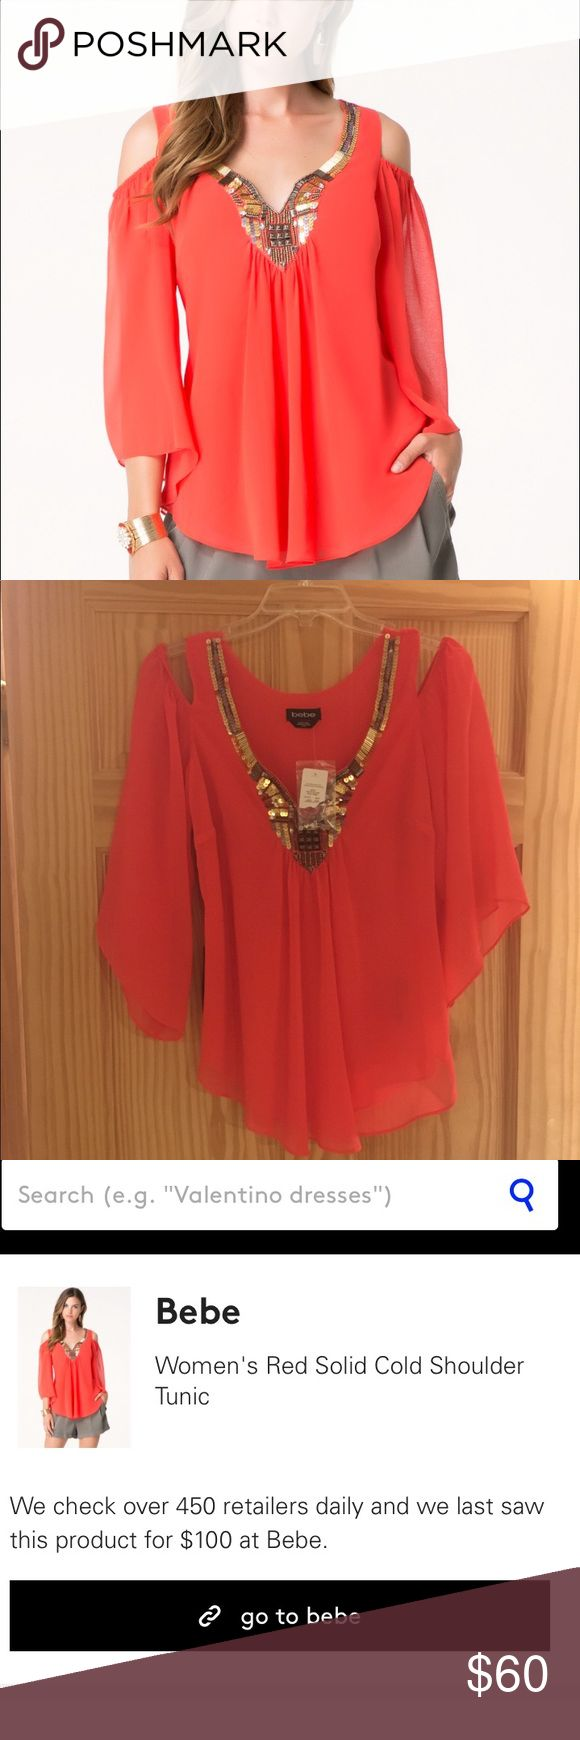 Women's red solid cold shoulder tunic Bebe brand. Stunning light, gorgeous shirt with shoulder exposure and statement piece necklace lining. Flower. NWT. Never been worn. Size xs bebe Tops Blouses